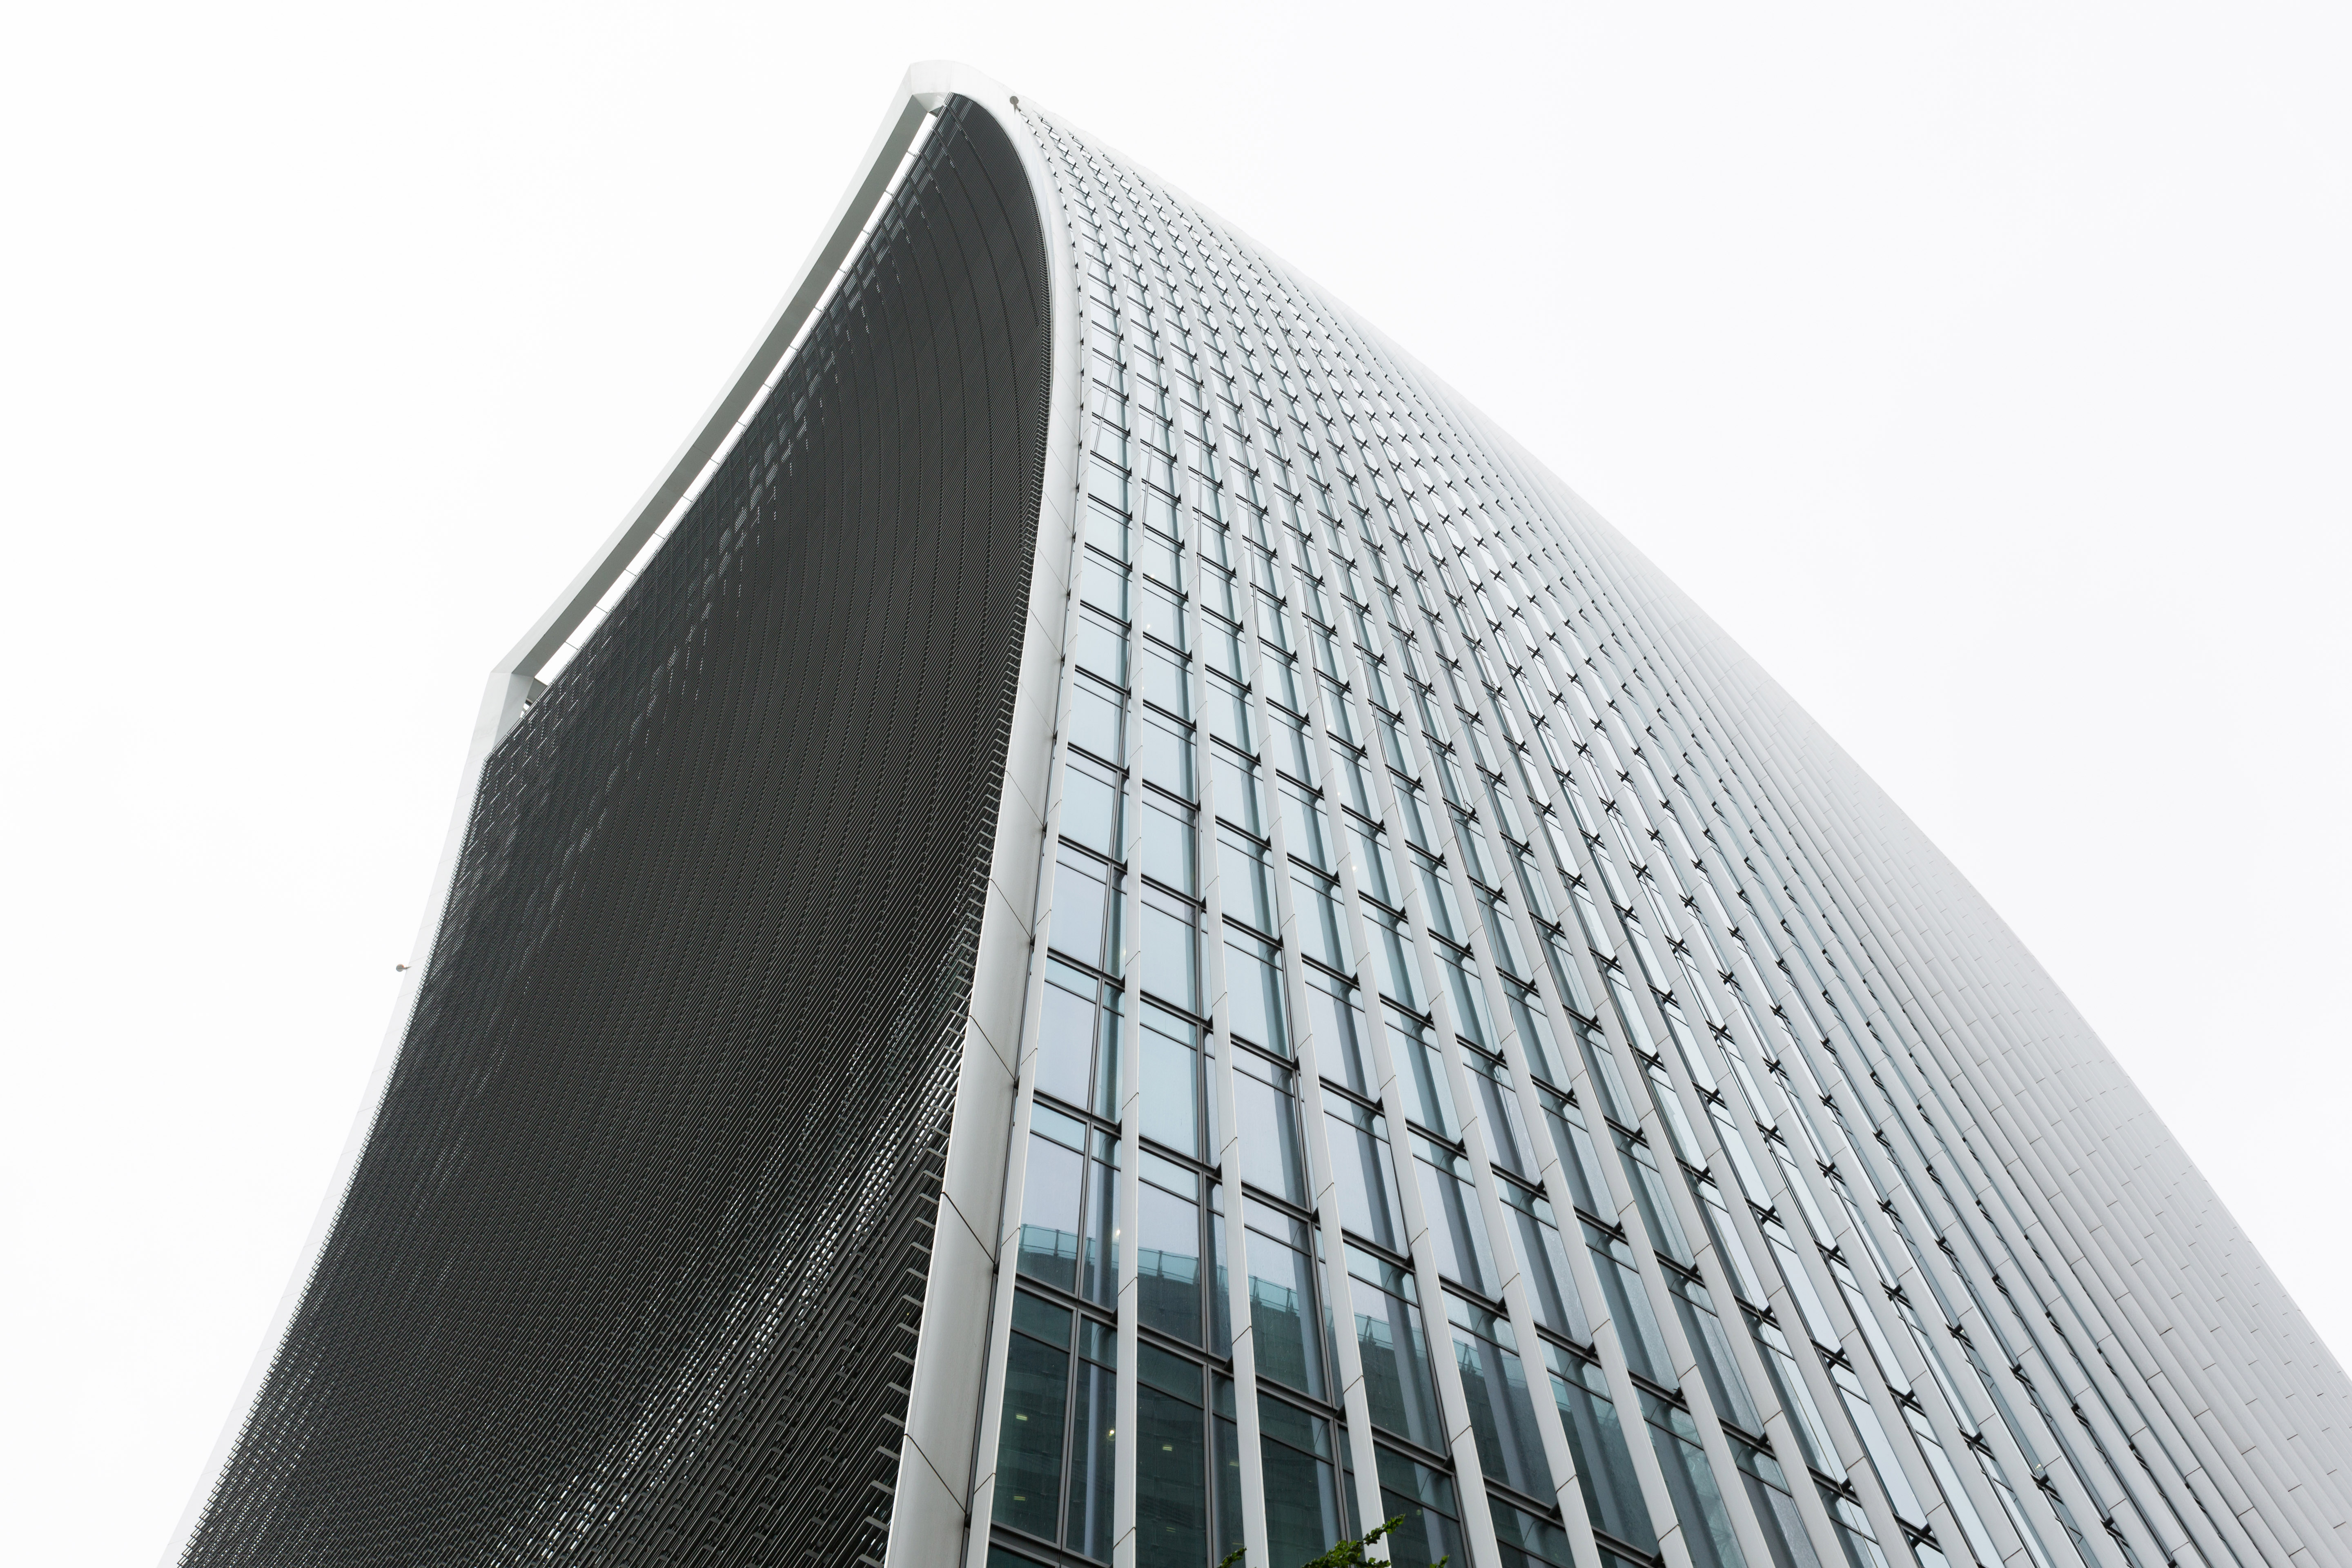 RSA's London offices at 20 Fenchurch Street